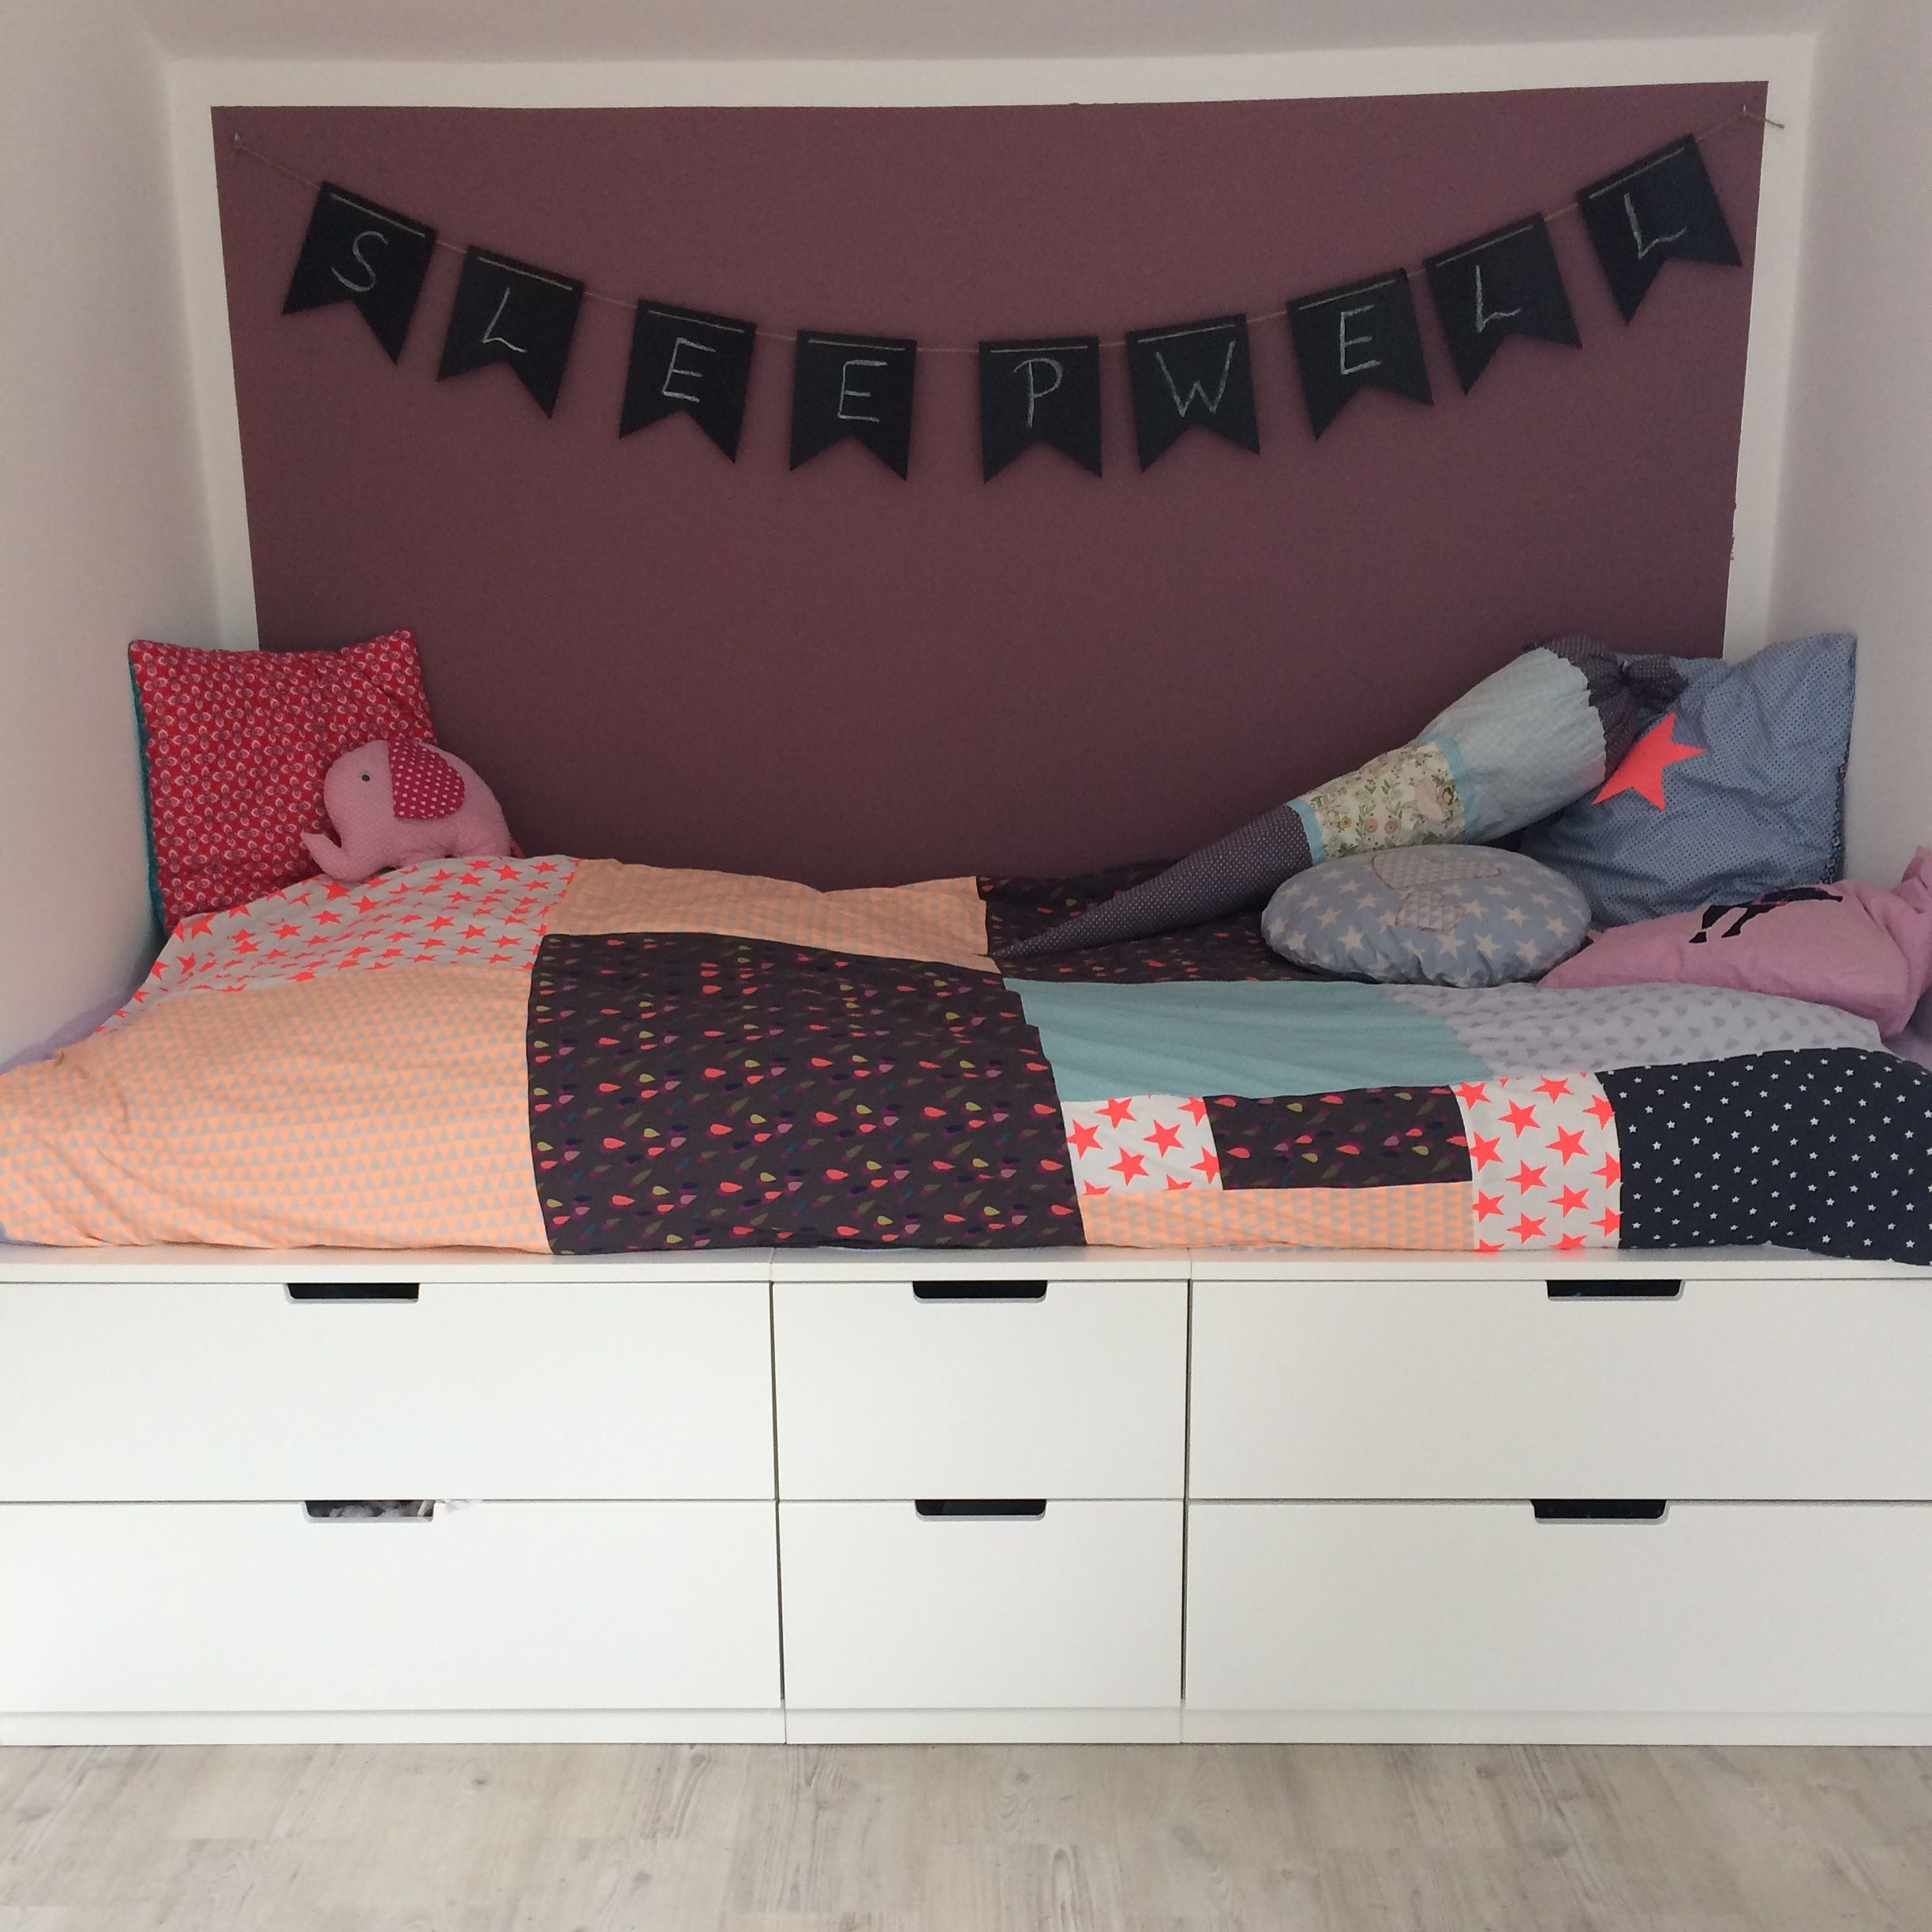 bett auf nordli kommoden ikeahacks kinderzimmer pinterest bedrooms kids rooms and barn